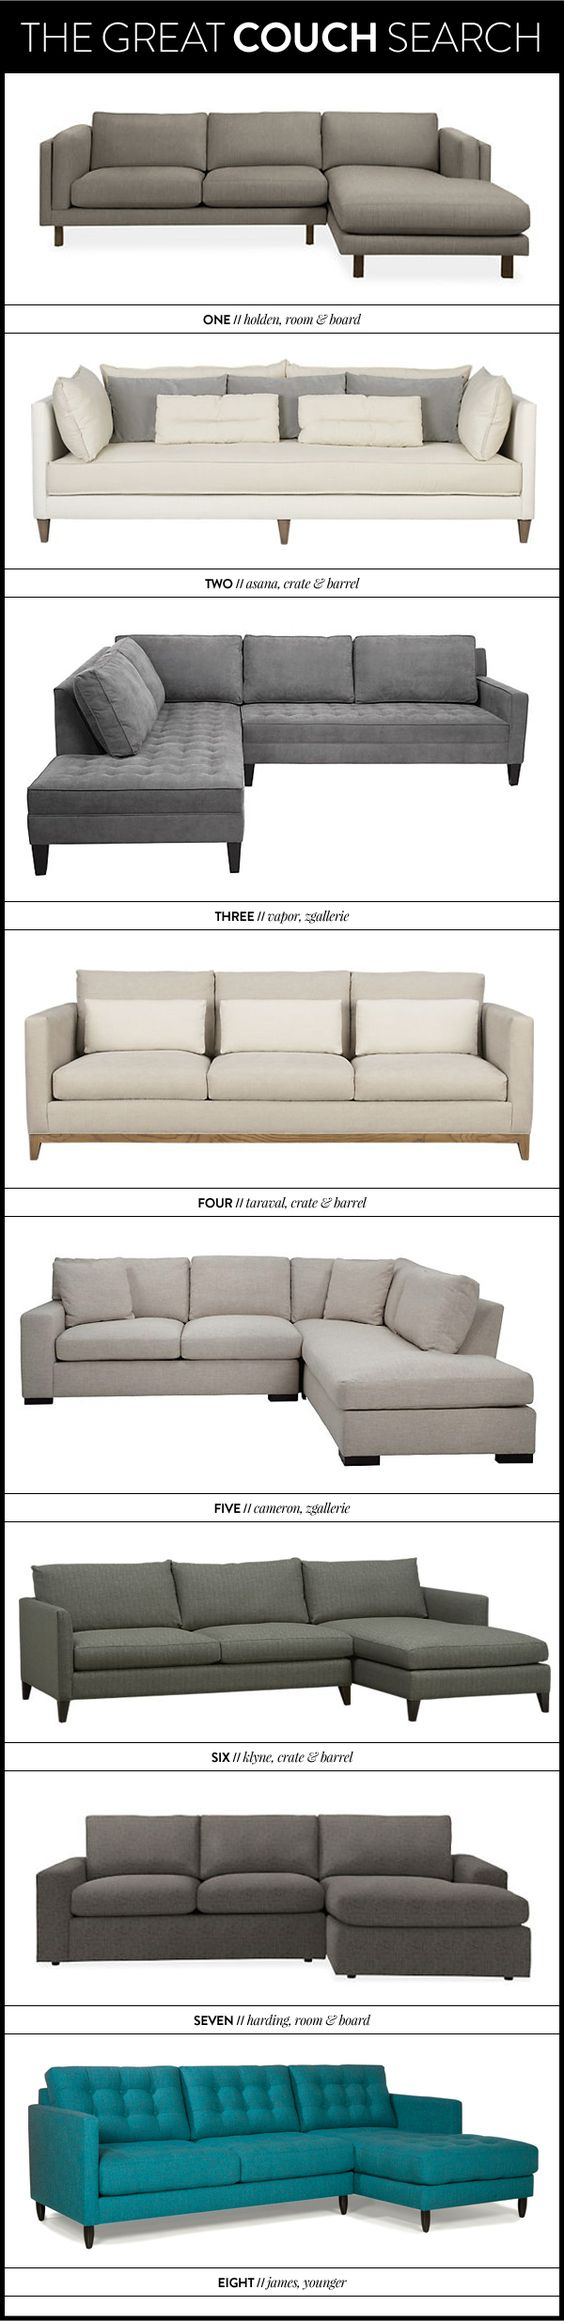 THE GREAT COUCH, SOFA, SECTIONAL SEARCH - MegBiram.com